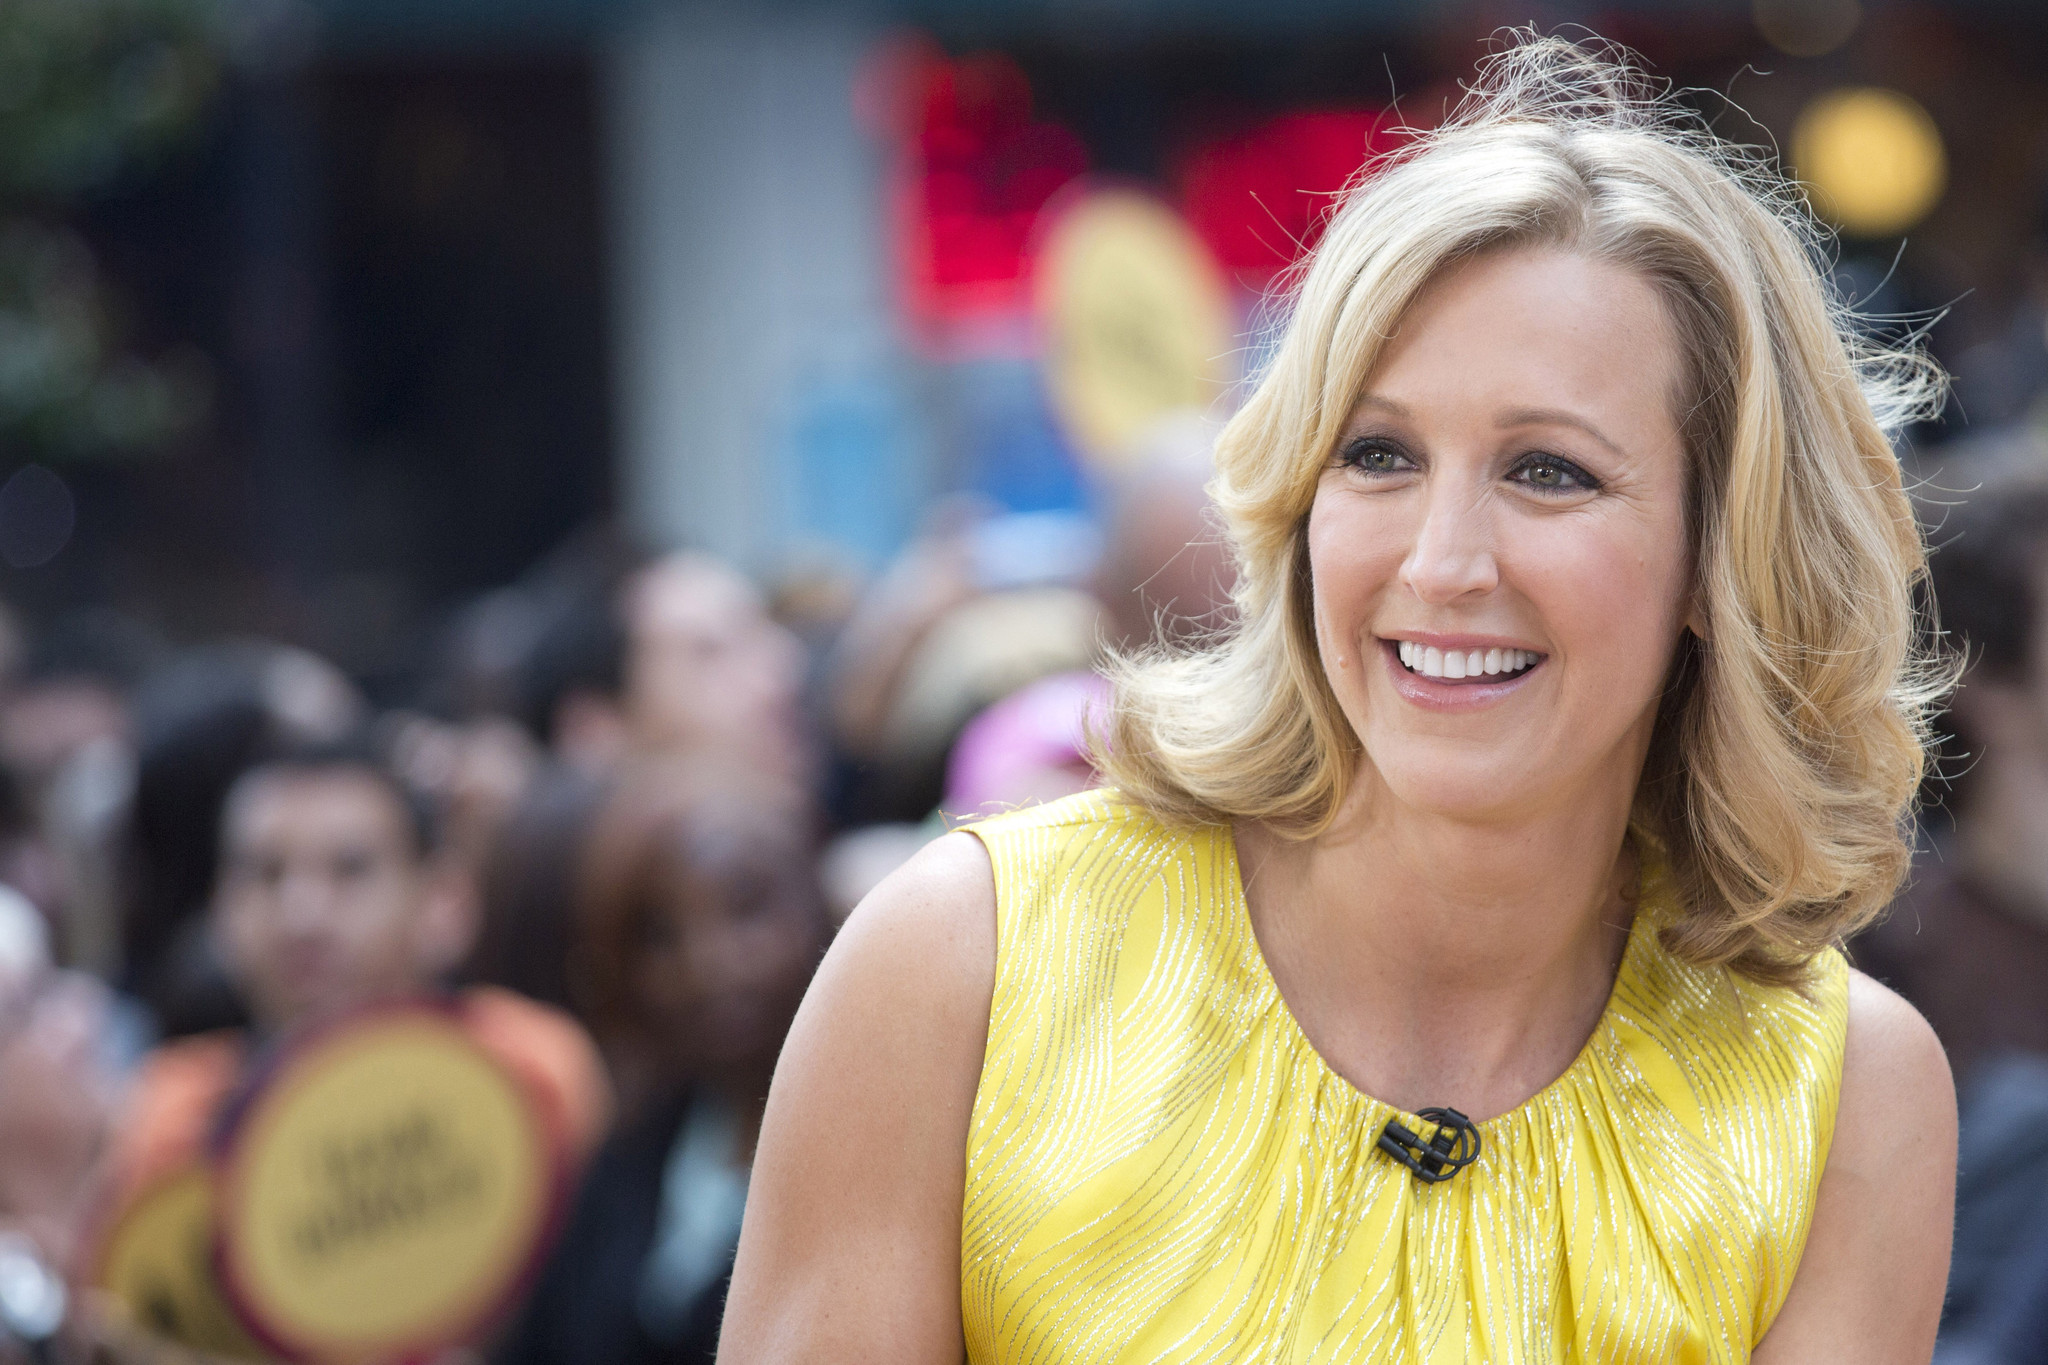 Lara Spencer Promoted To Co-host On 'Good Morning America